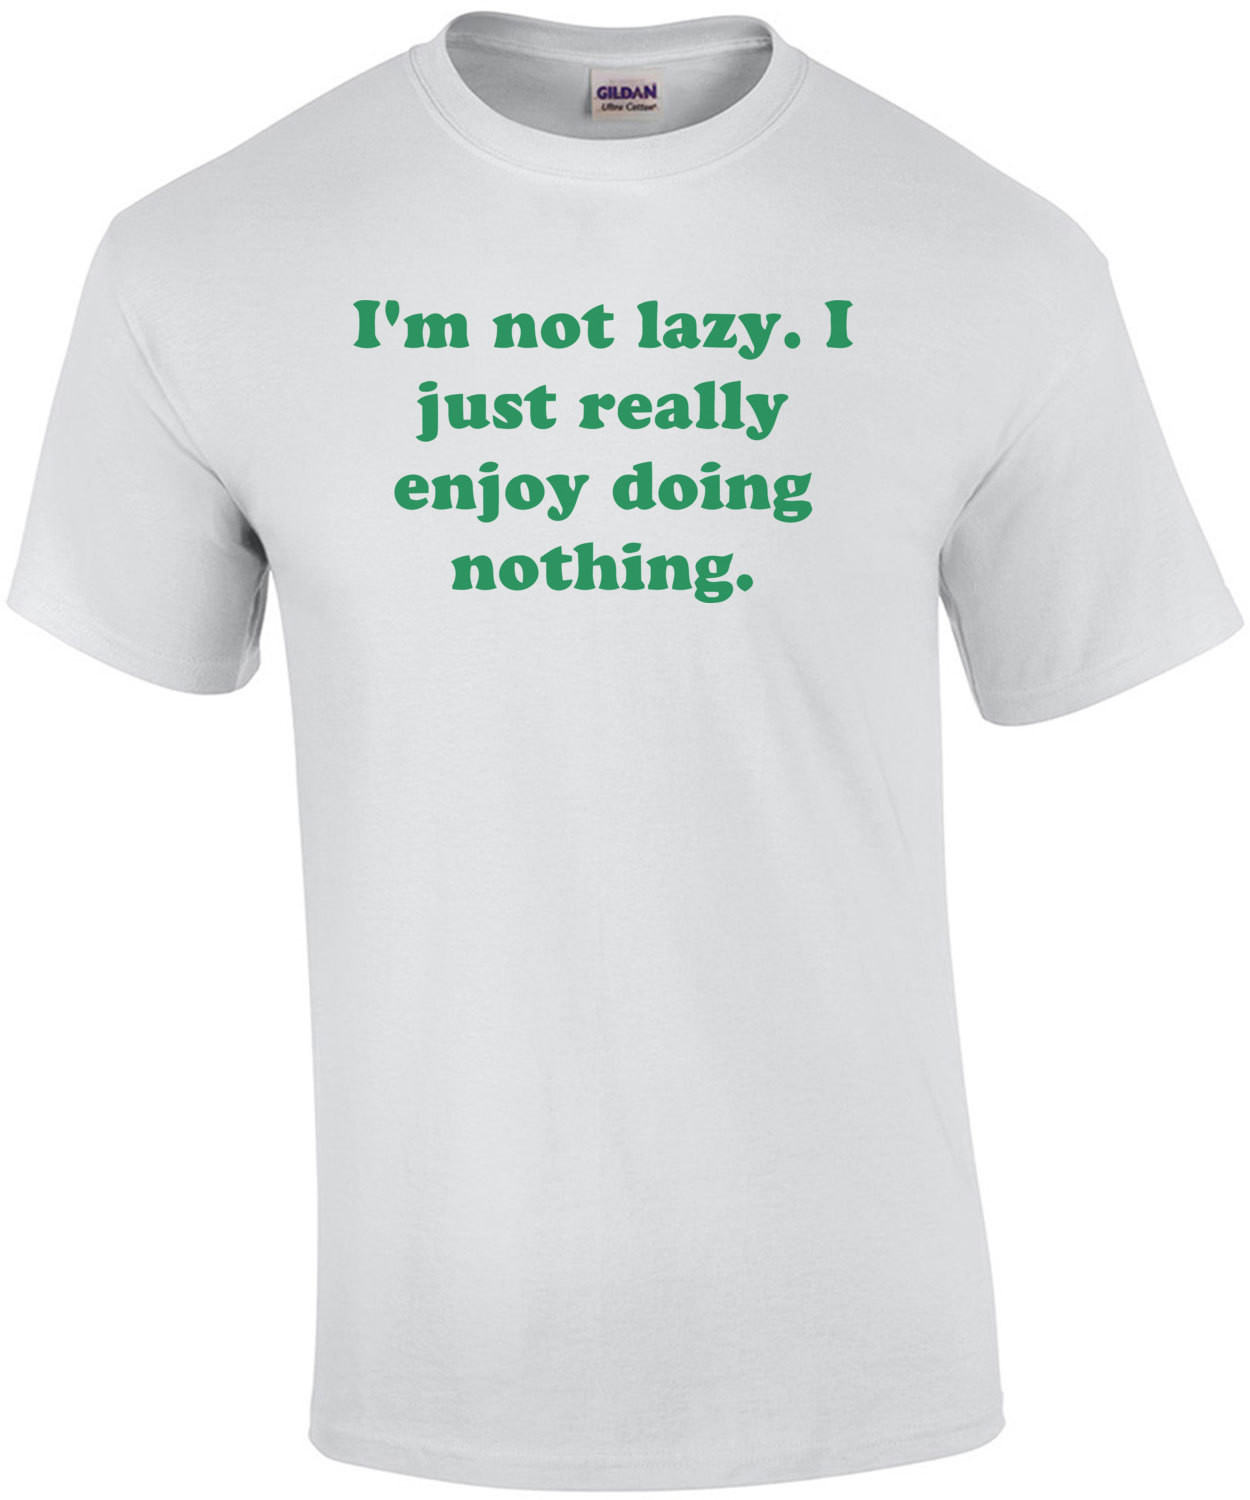 I'm not lazy. I just really enjoy doing nothing. Shirt